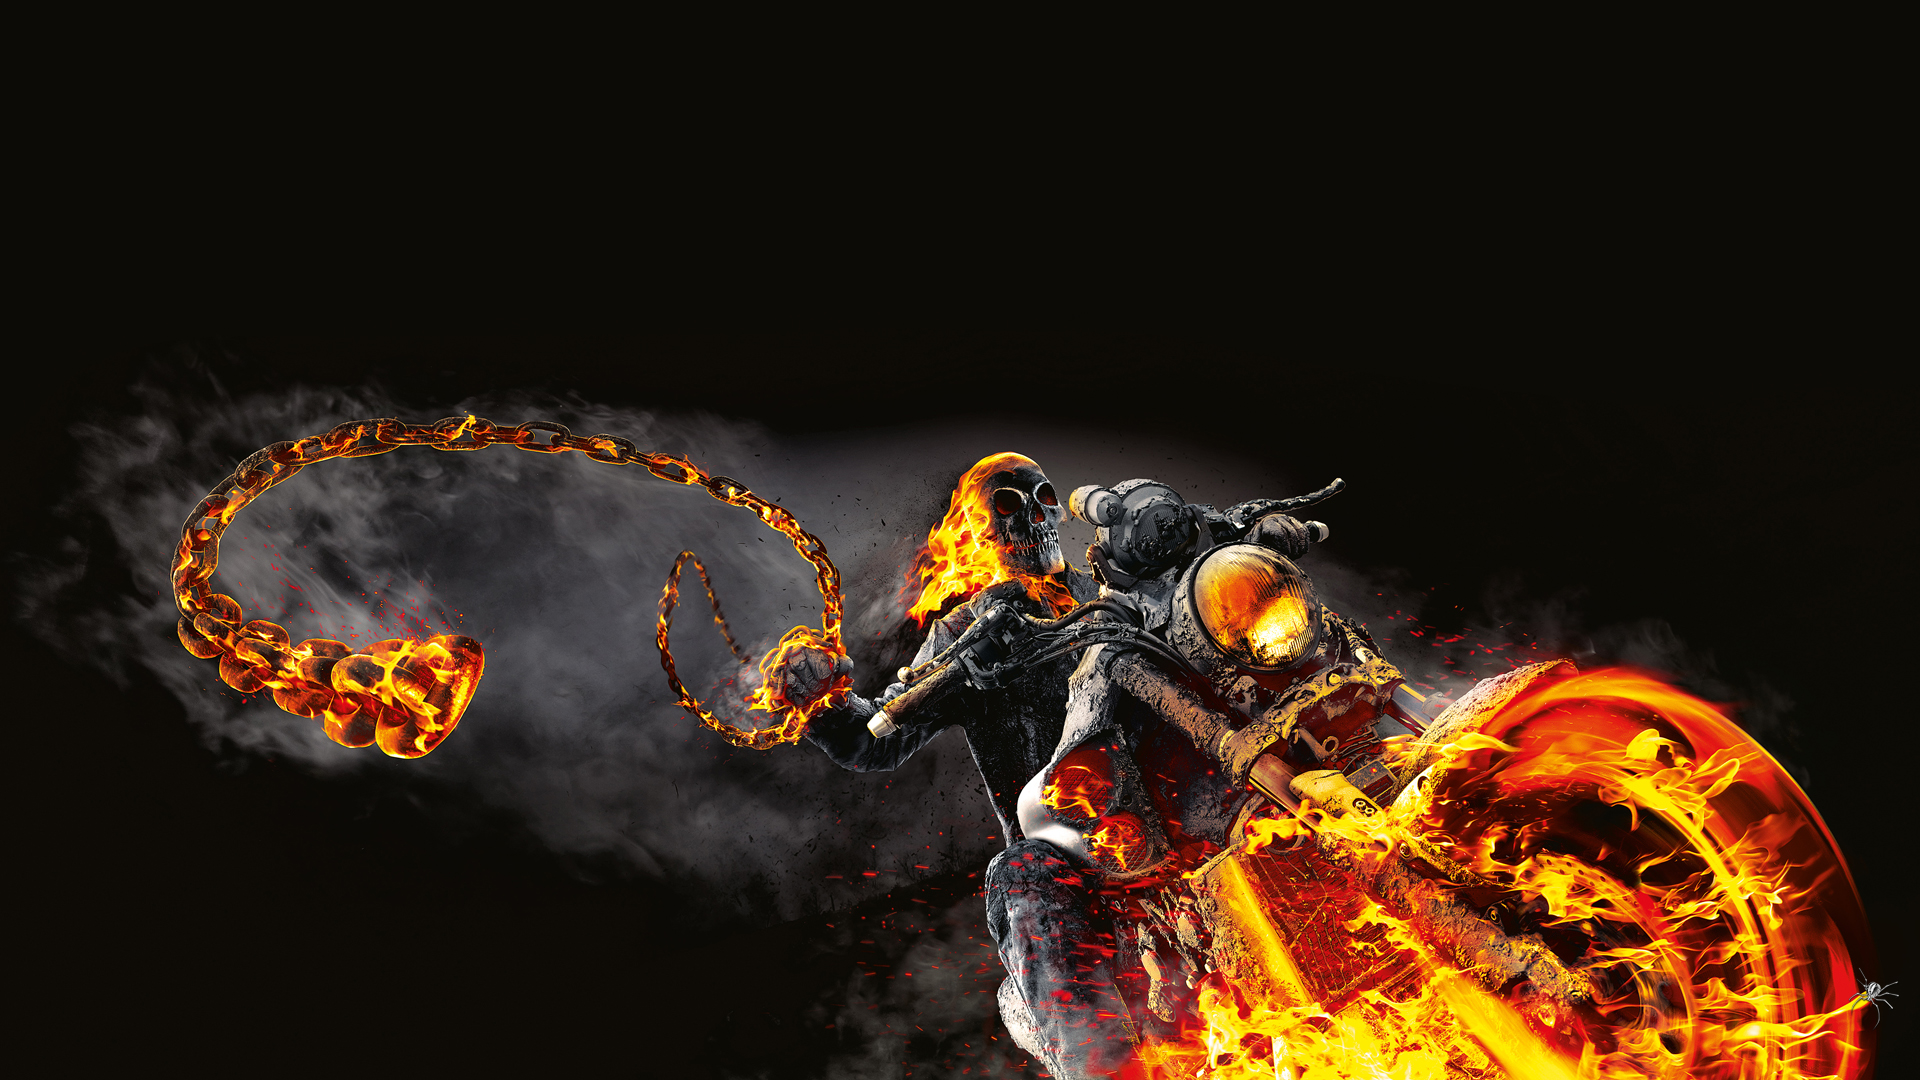 related pictures ghost rider hd 1920x1080 wallpapers 1920x1080 Car 1920x1080